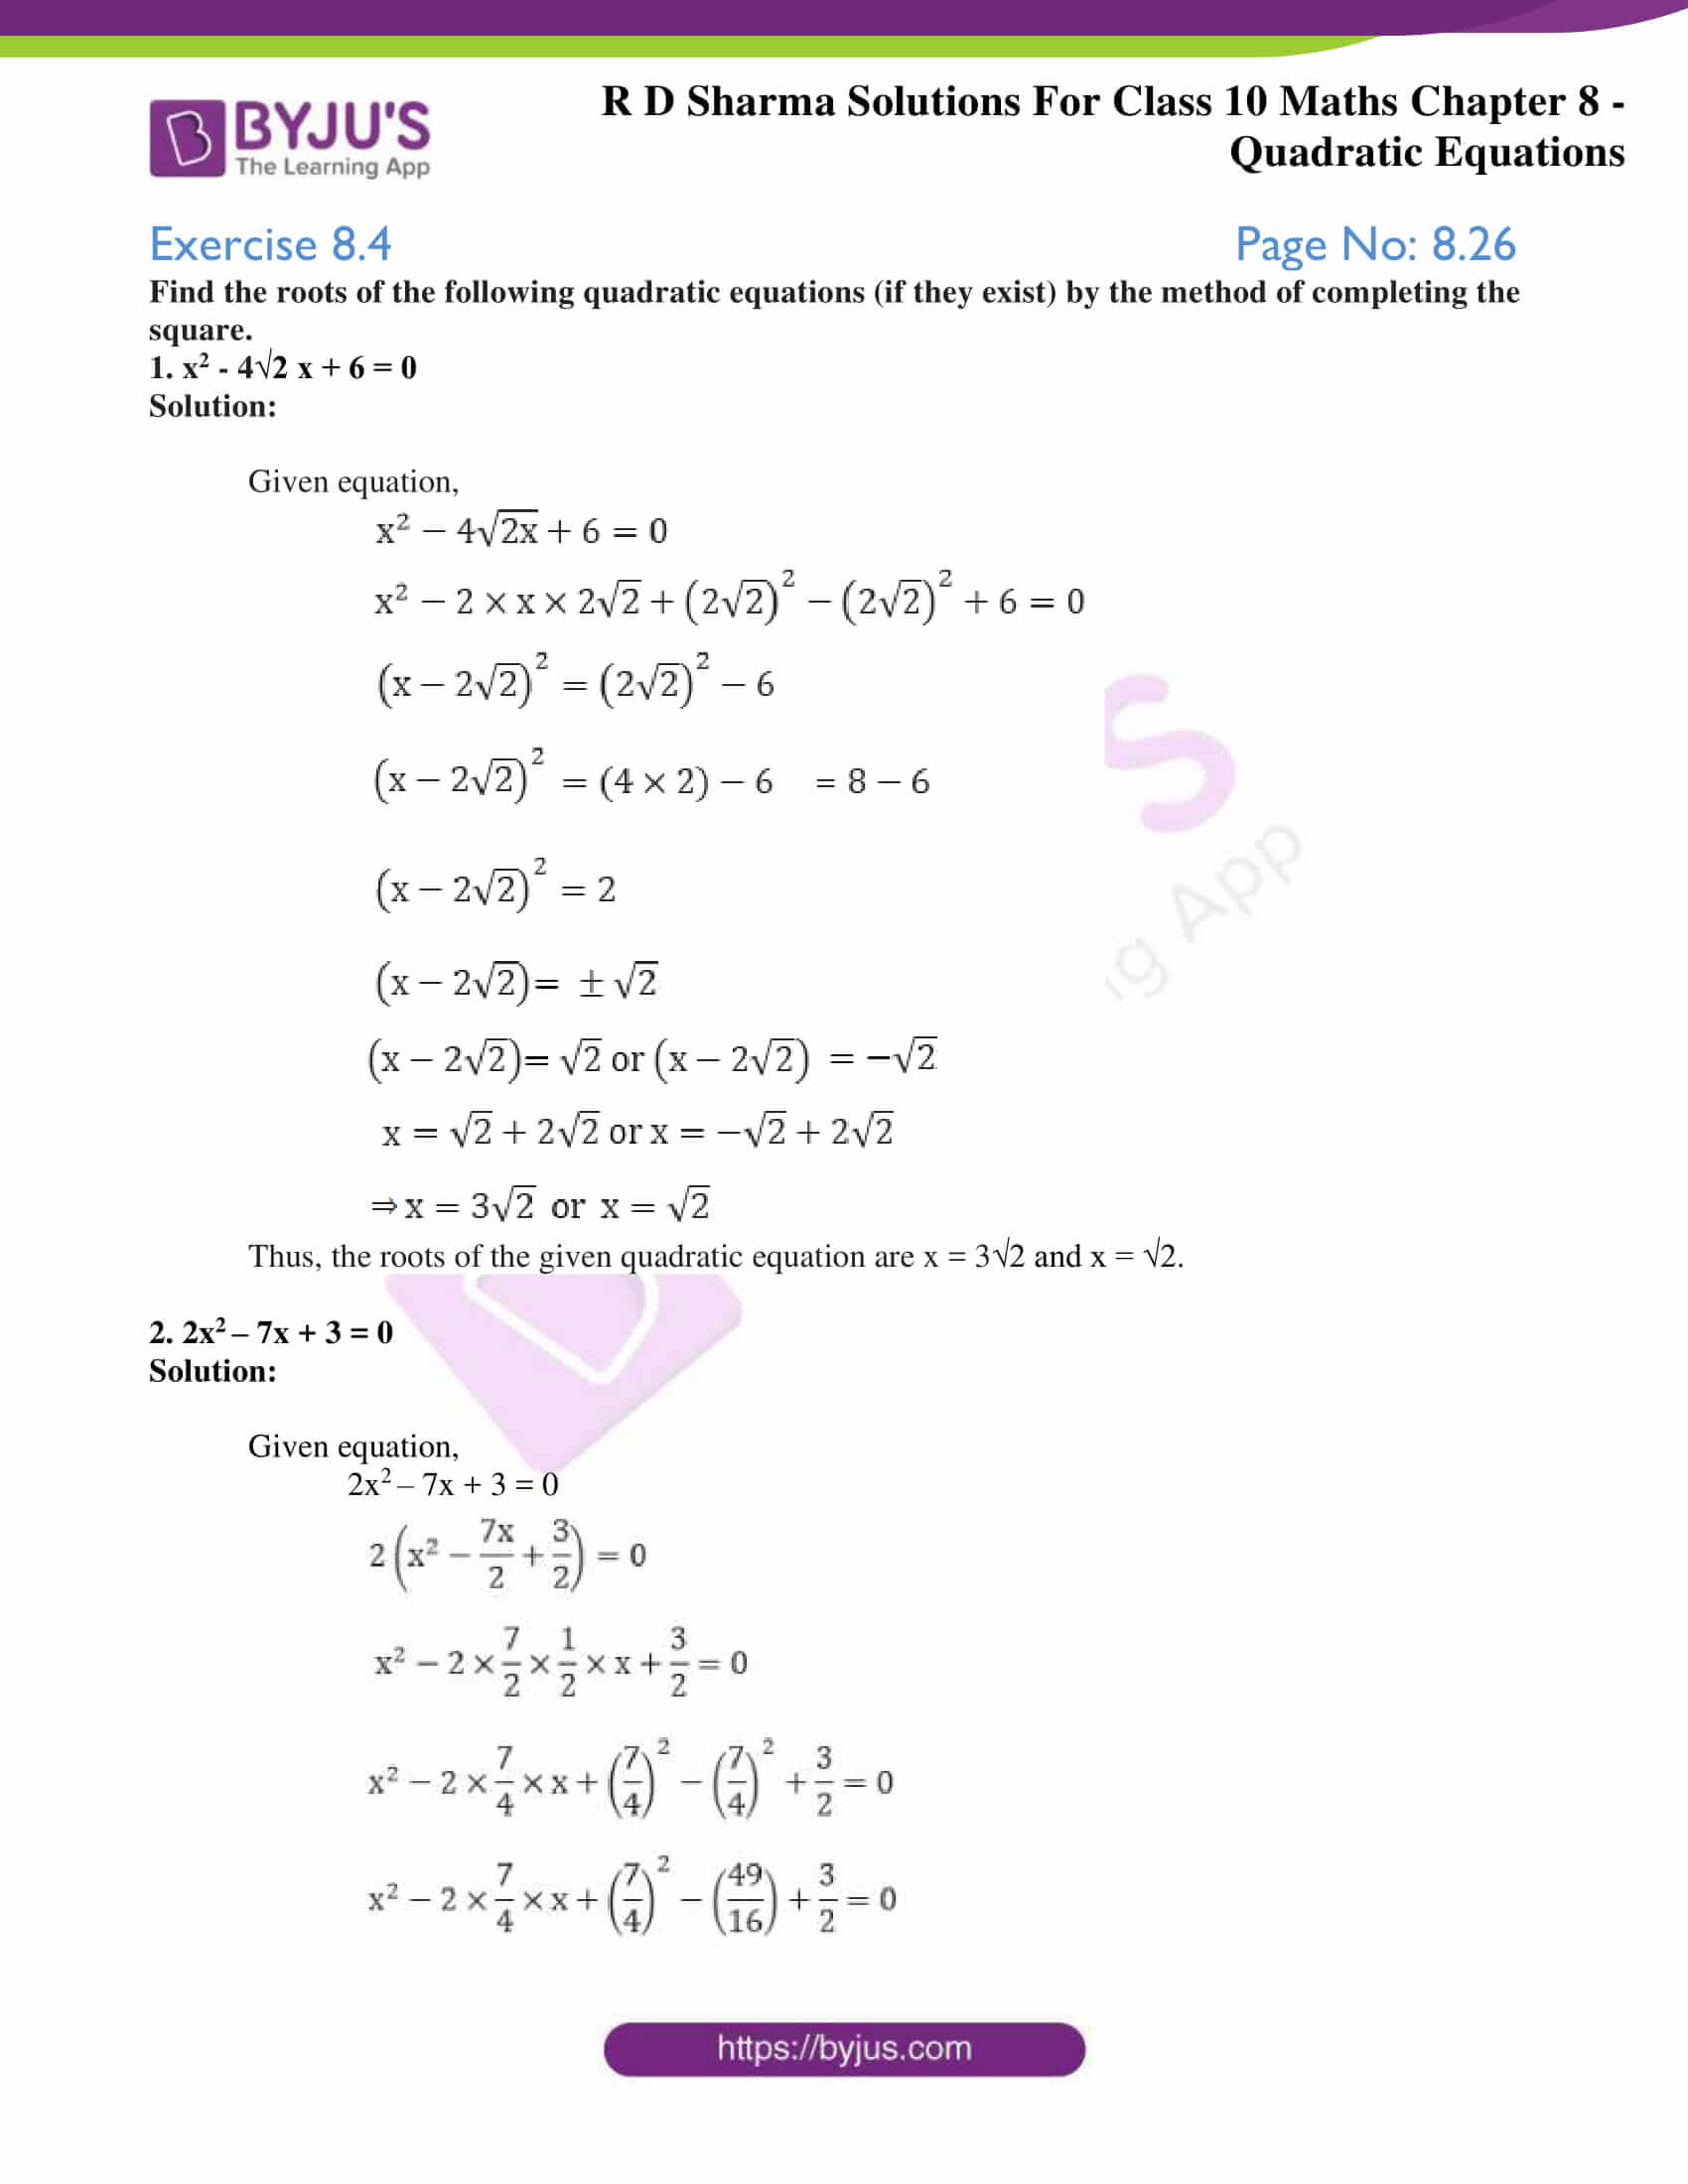 RD Sharma Solutions for Class 10 Chapter 8 Quadratic Equations 24